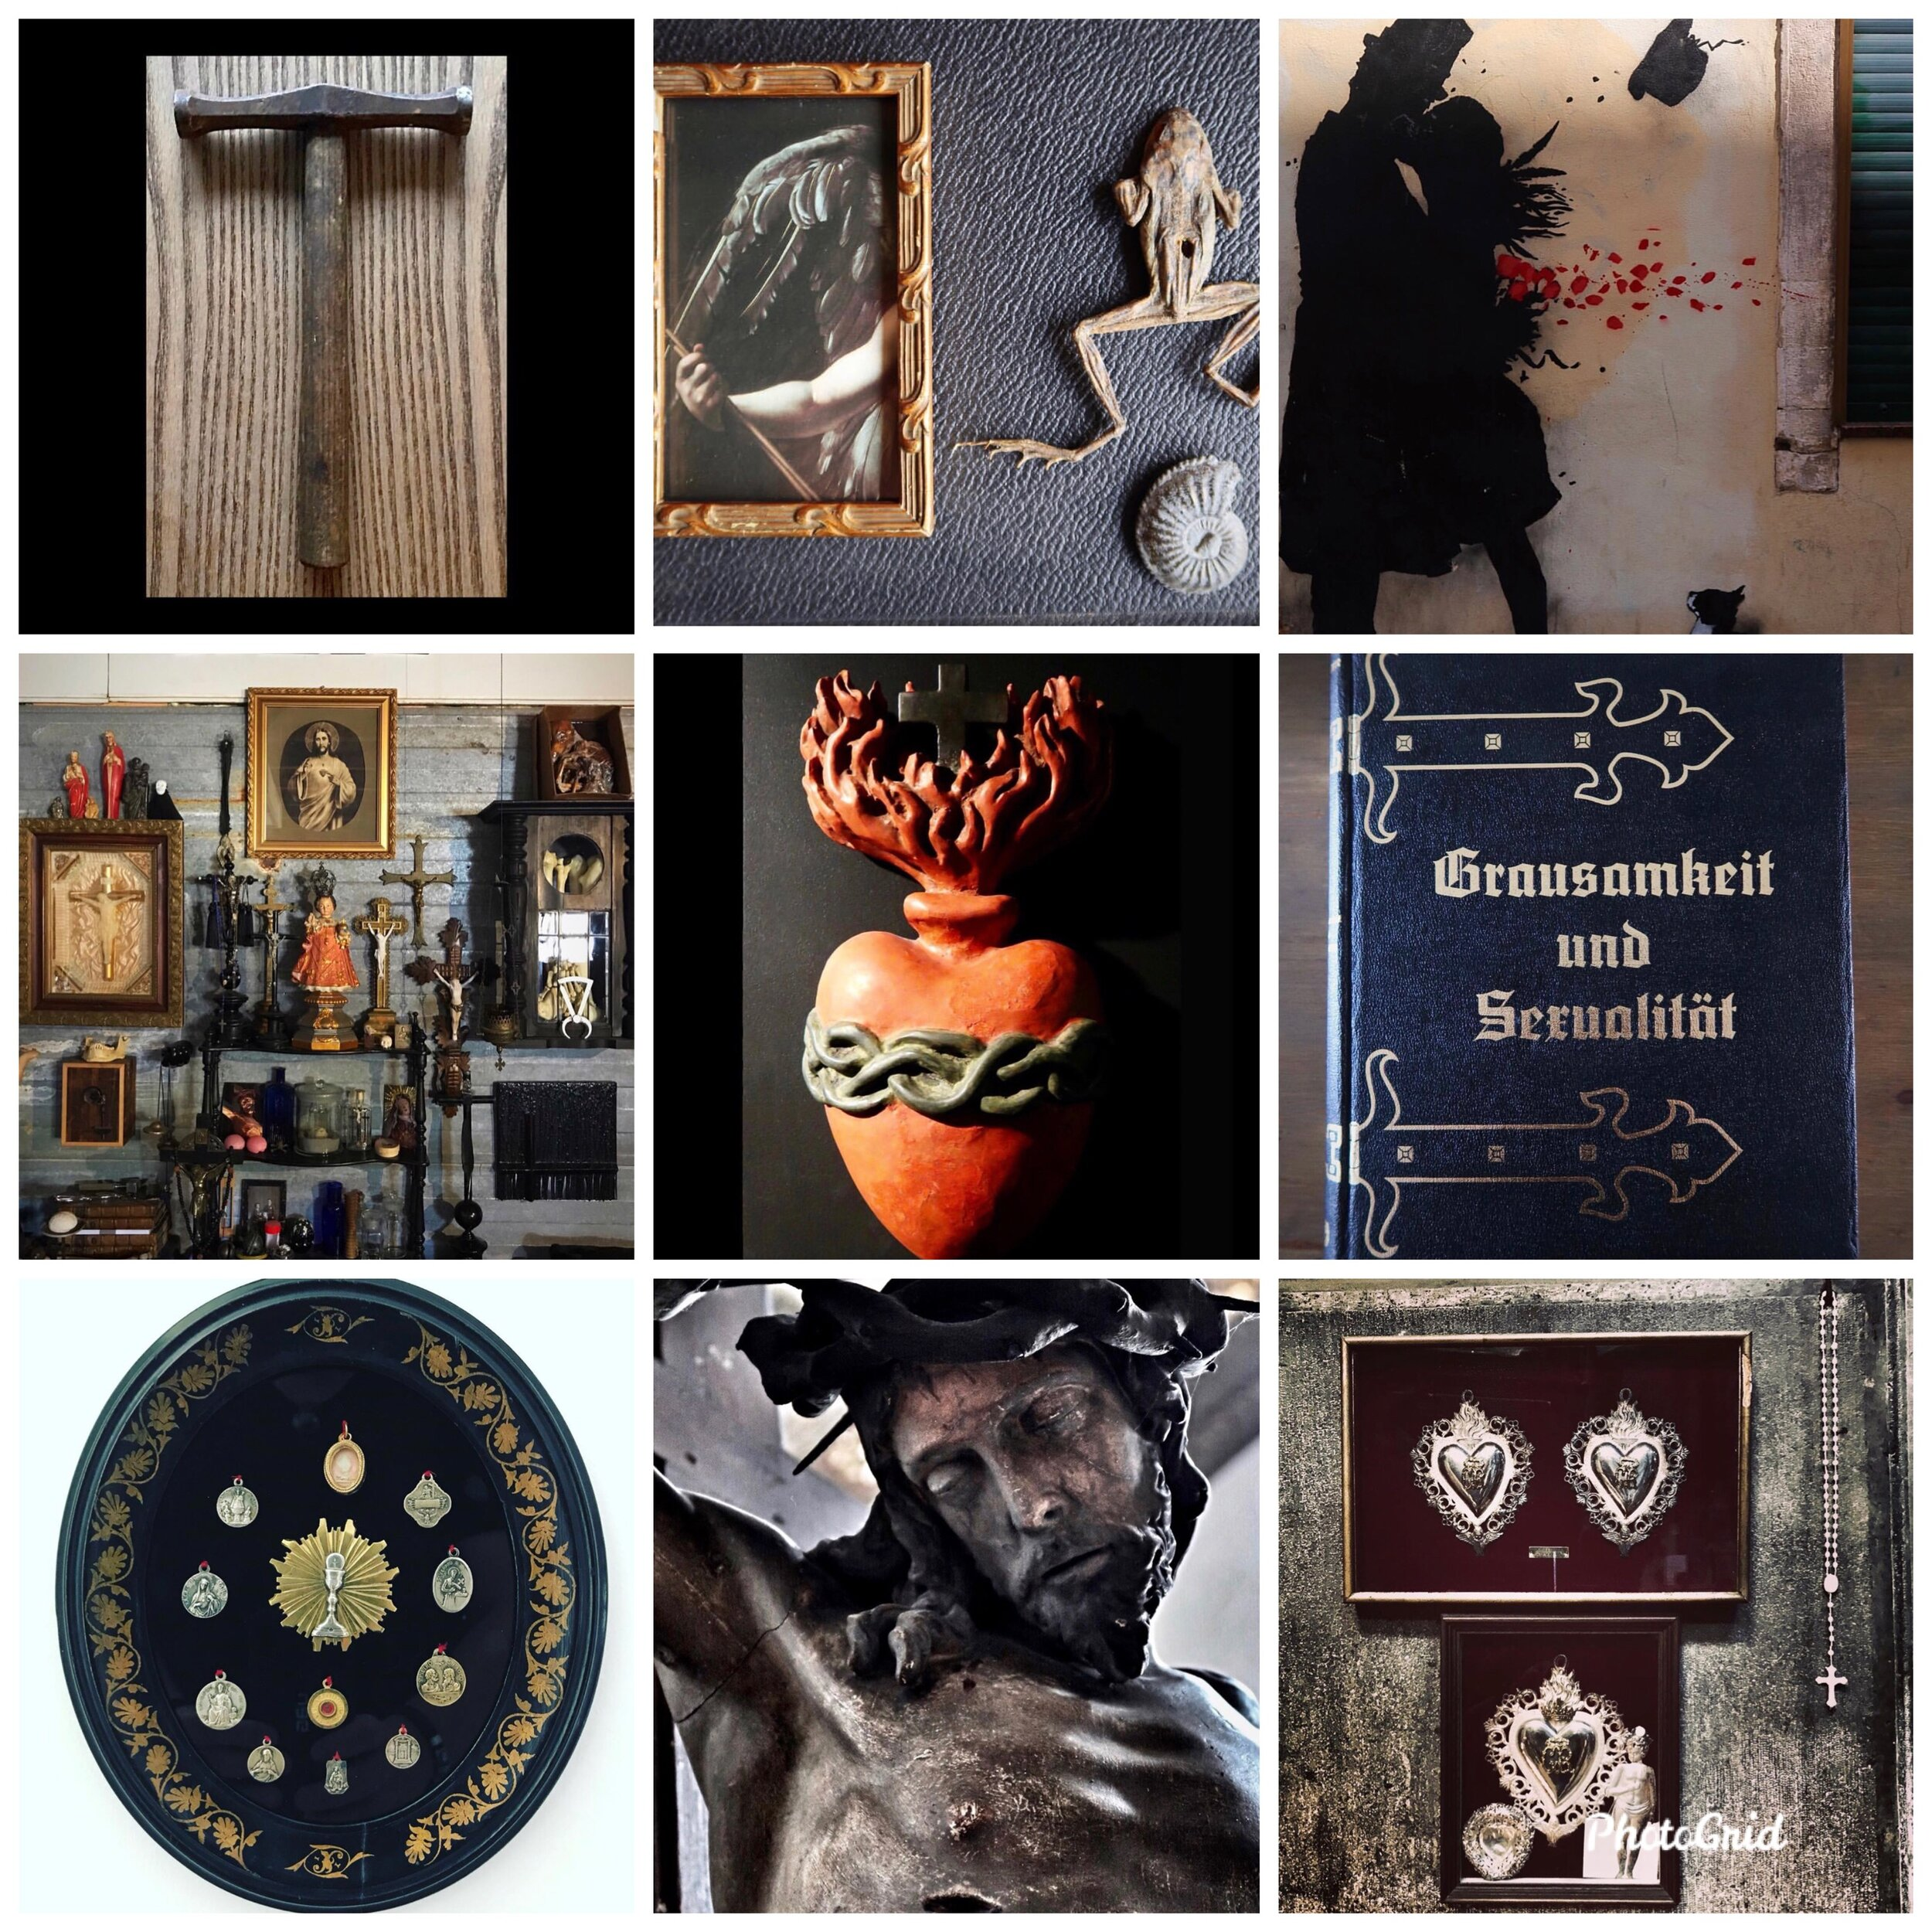 @FREIHERR65 IS A CLOSE COHORT OF MINE ON INSTAGRAM, SHARING RENDING RELIGIOUS IMAGERY AND OLD TOOLS OF AUSTERE BEAUTY.